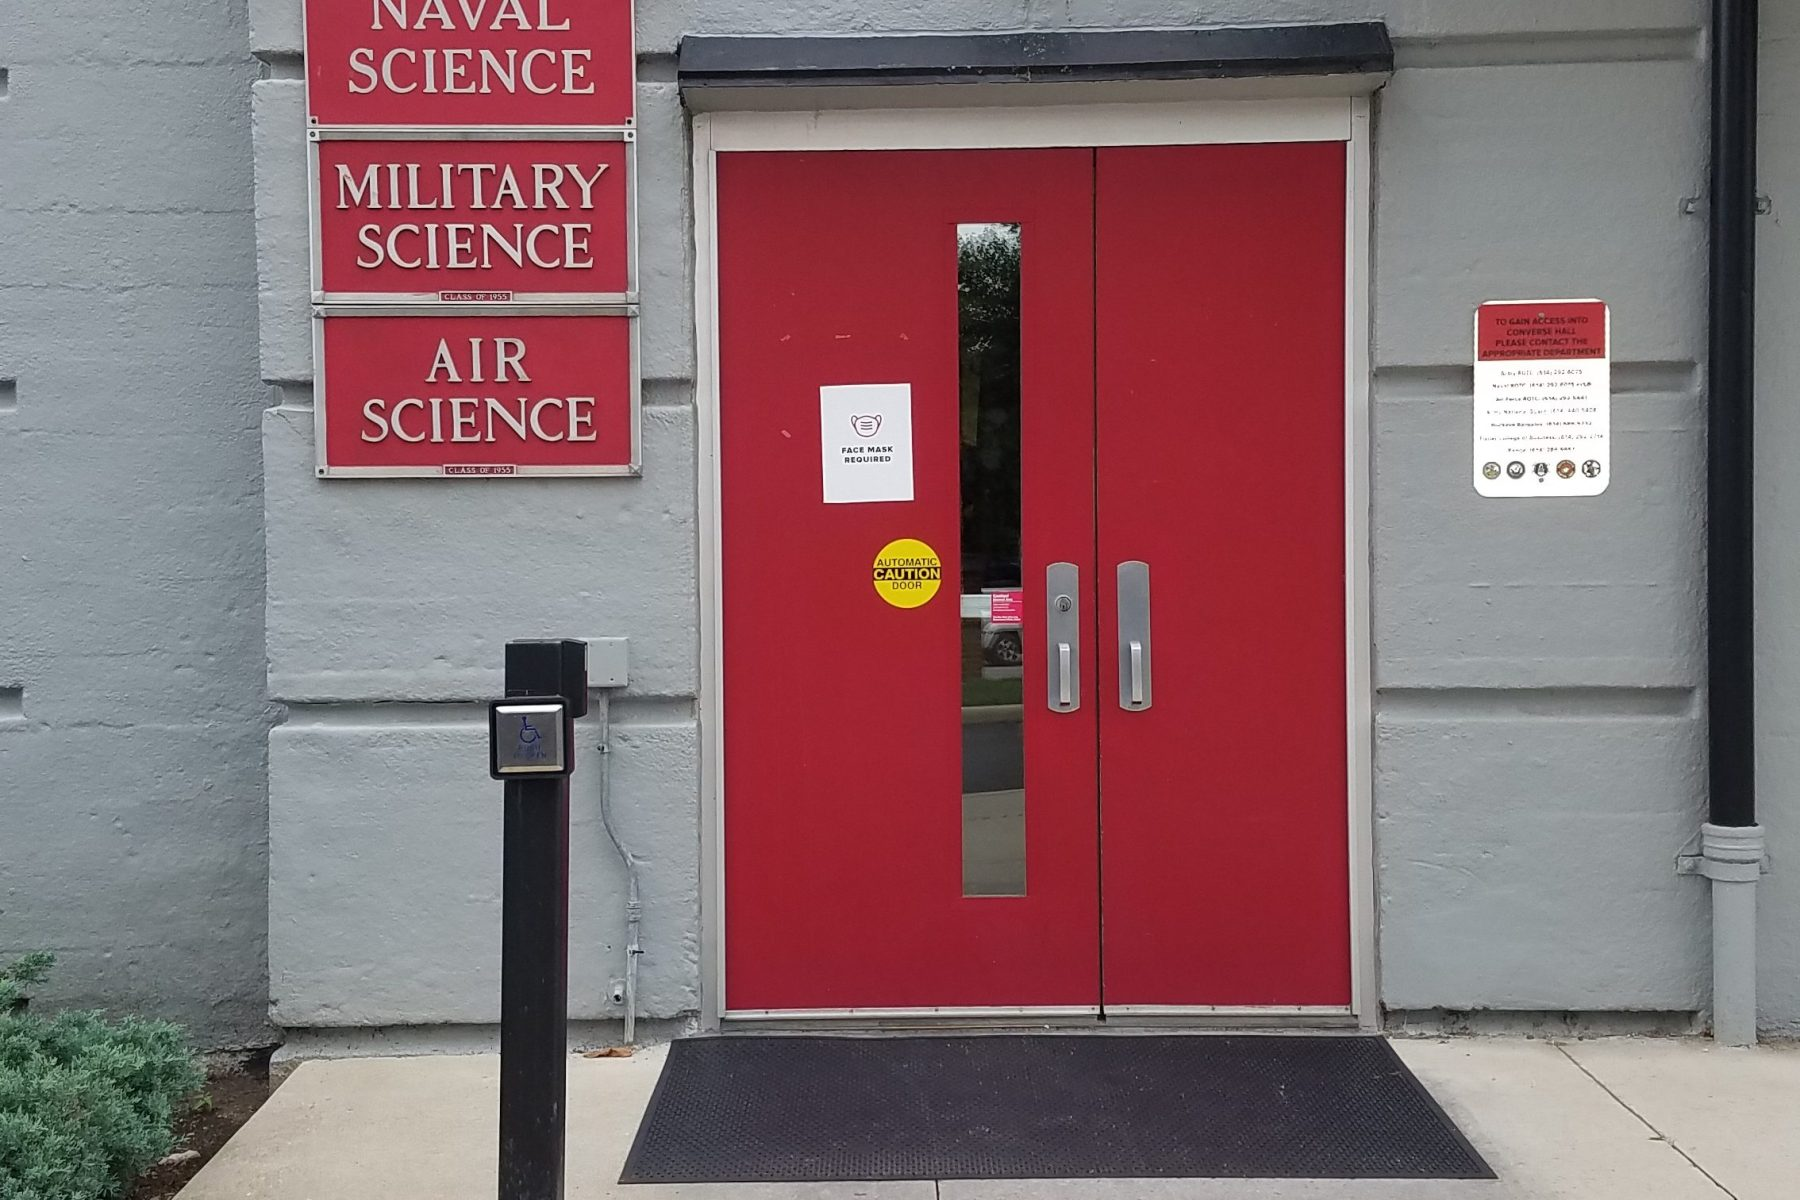 Ohio State University ROTC building entrance with signs for Military Science, Air Science, & Naval Science